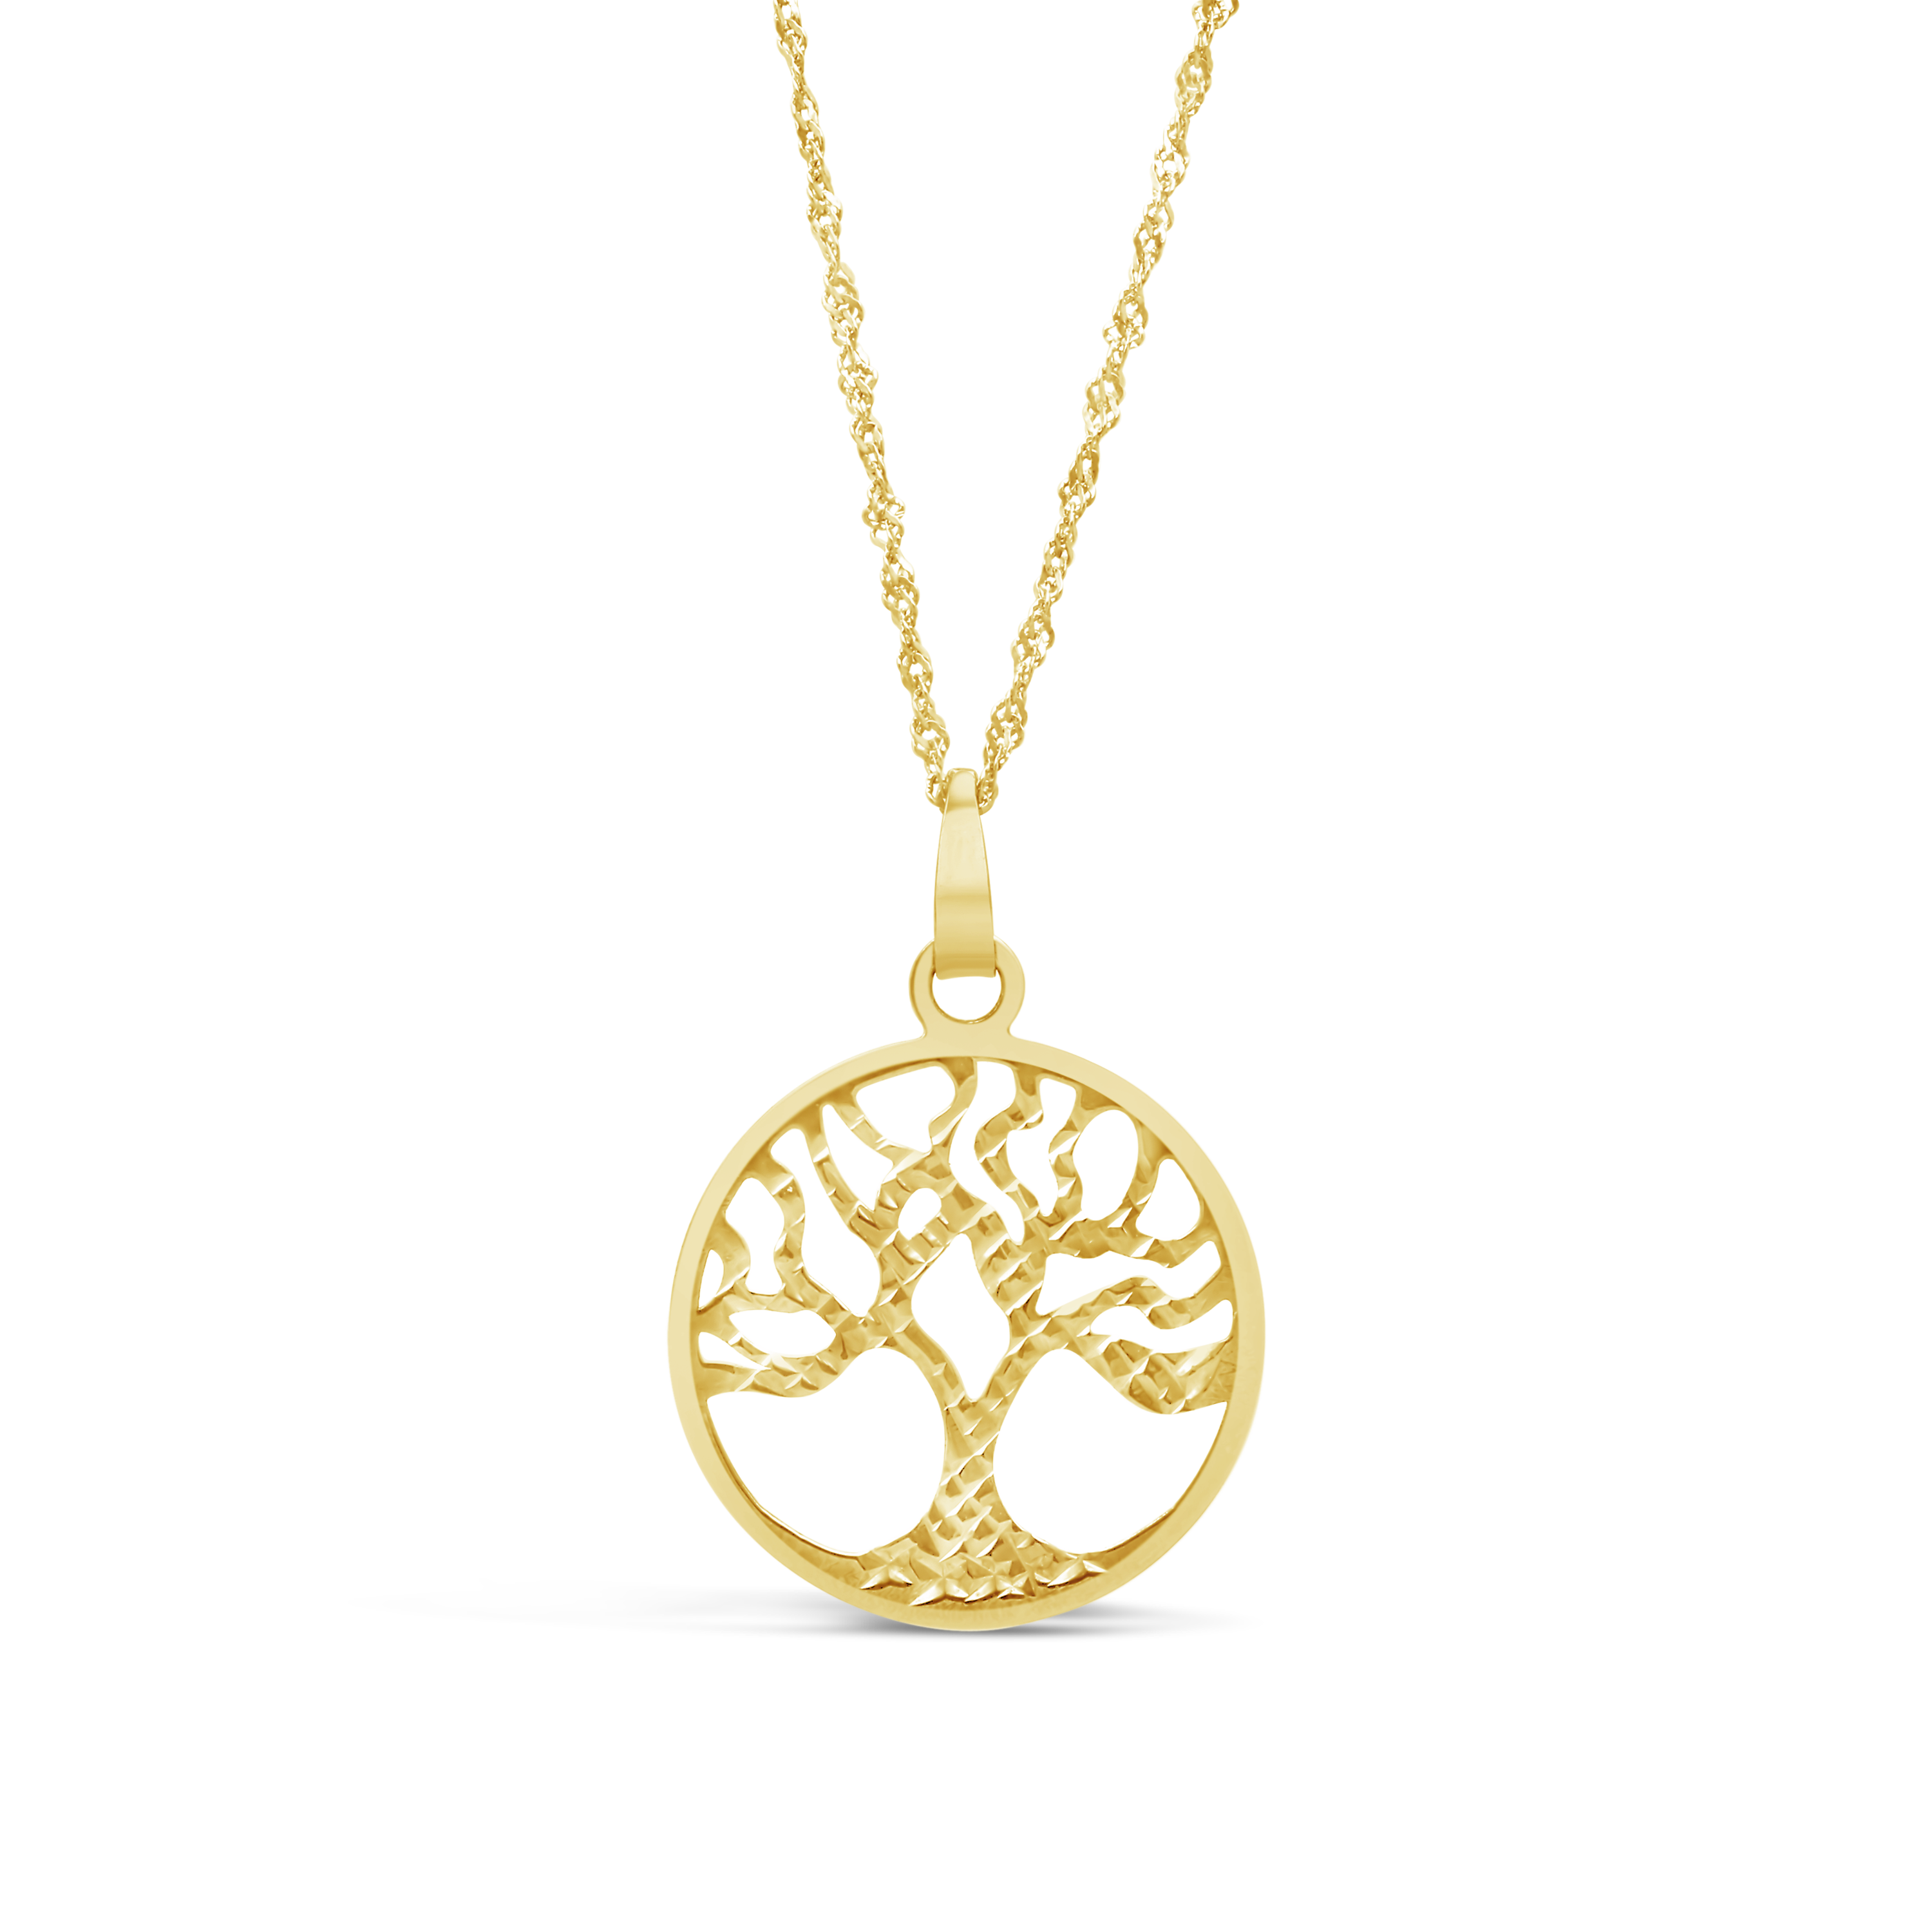 d52230ea6c3 9ct Gold Large Tree of Life Pendant with Free Bonded Chain - NWJ